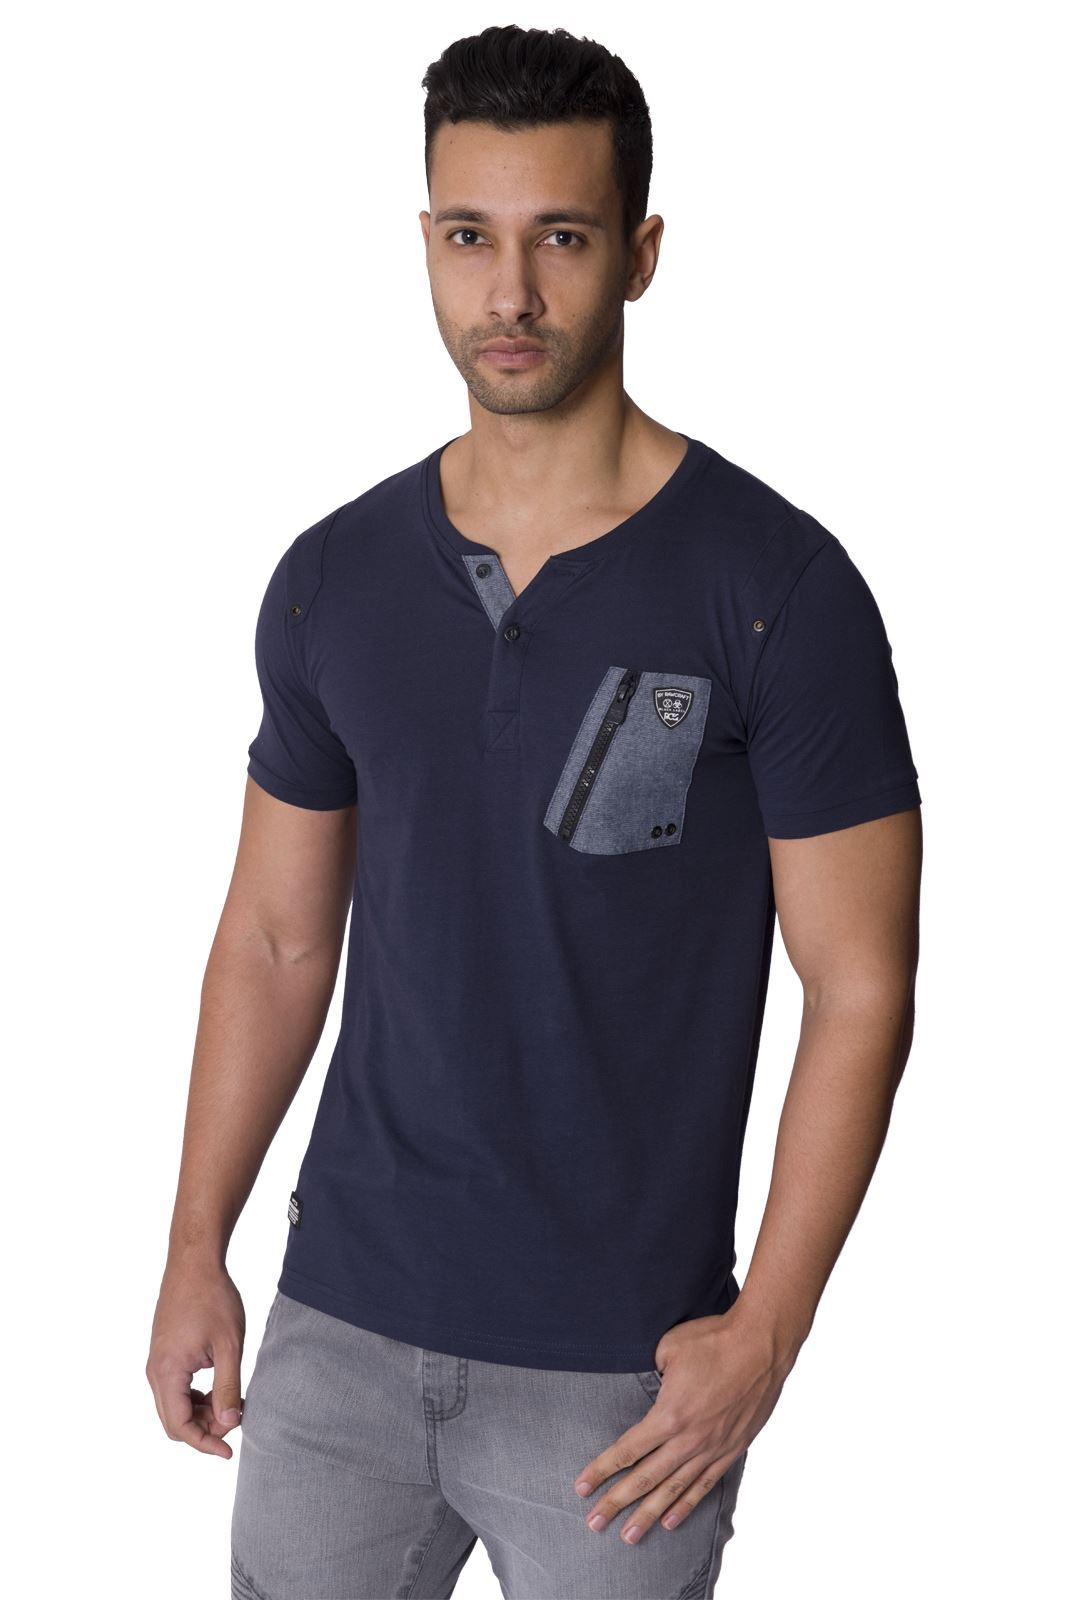 Shop men's Short Sleeve T-Shirts from a great selection of comfortable and quality Shirts today! Free shipping with online orders over $60 Hanes Men's Workwear Short Sleeve Pocket Tee (2-pack) $ $ VintageKhaki Color, selected; White Color VintageDenim Color VintageBlack Color.